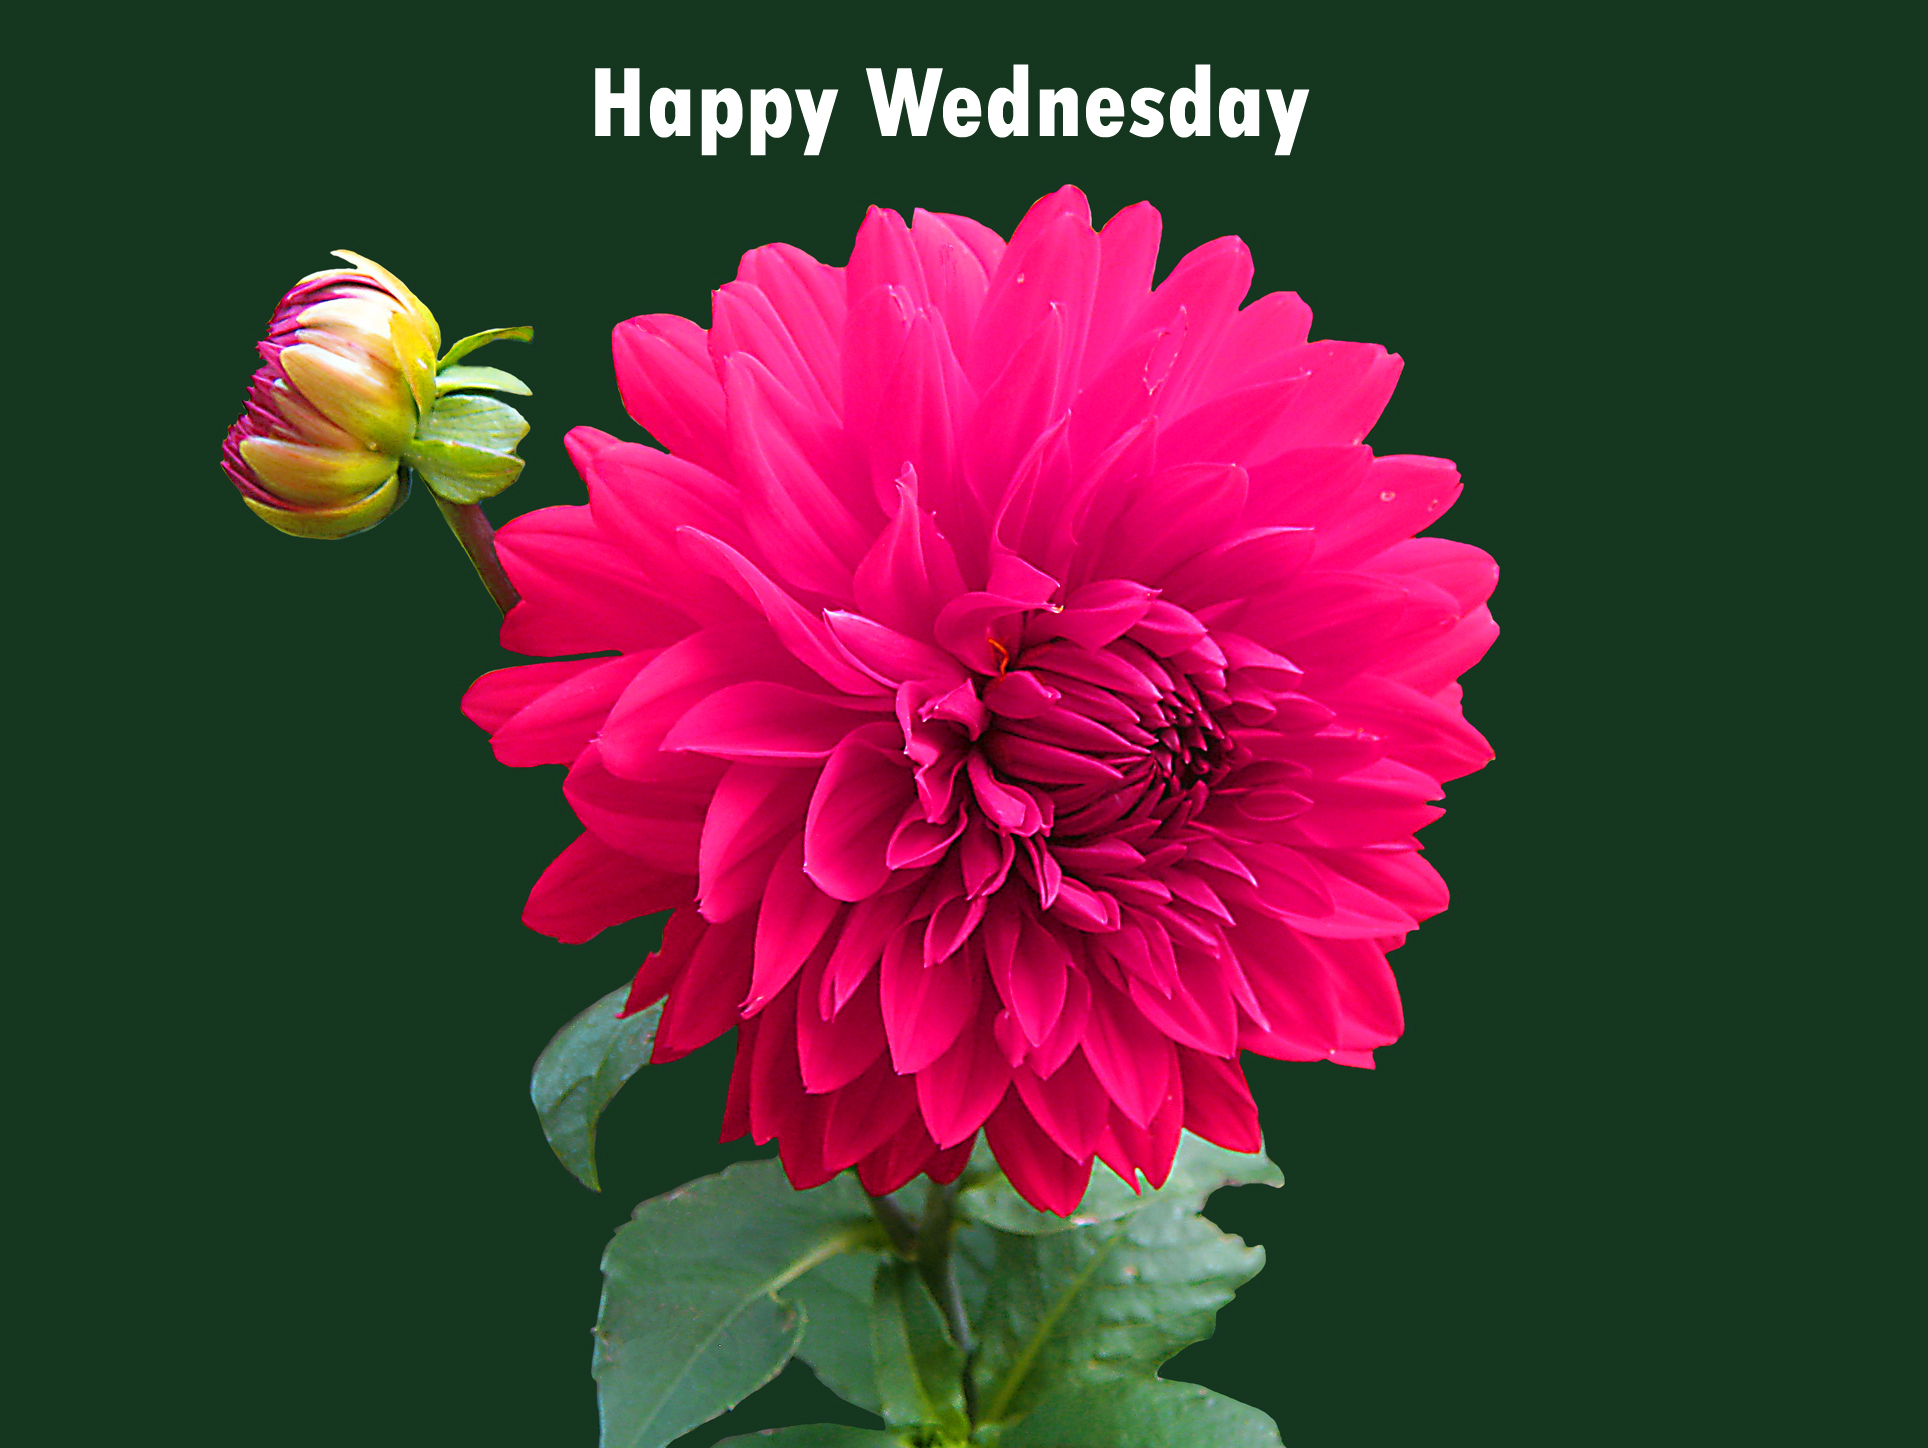 Happy Wednesday – Flowers To Wish You The Best | Wednesday ... |Wednesday Flowers